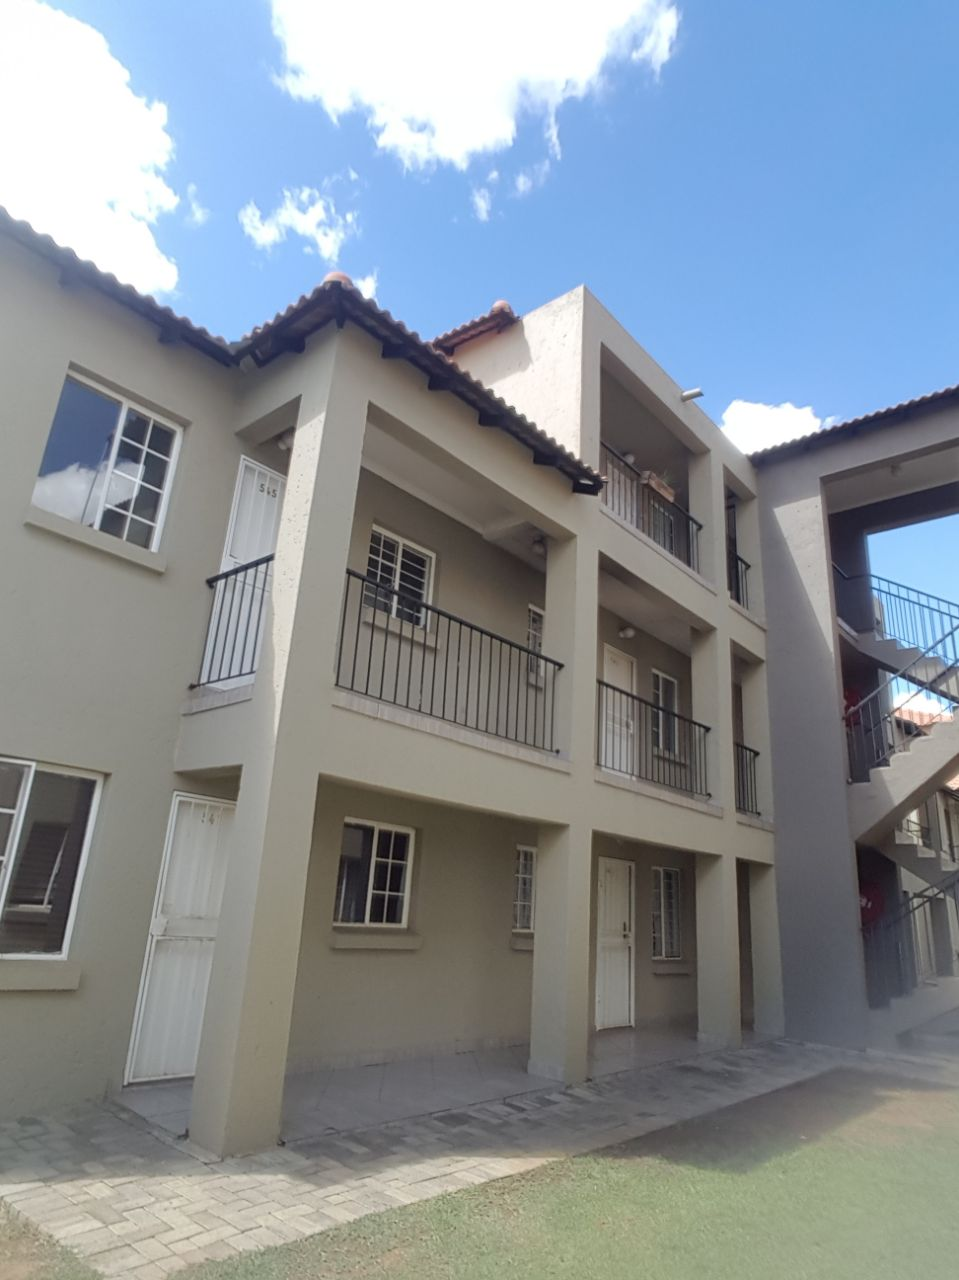 2 Bed 1 Bath apartment in Potchefstroom for sale.  Perfect student accommodation!